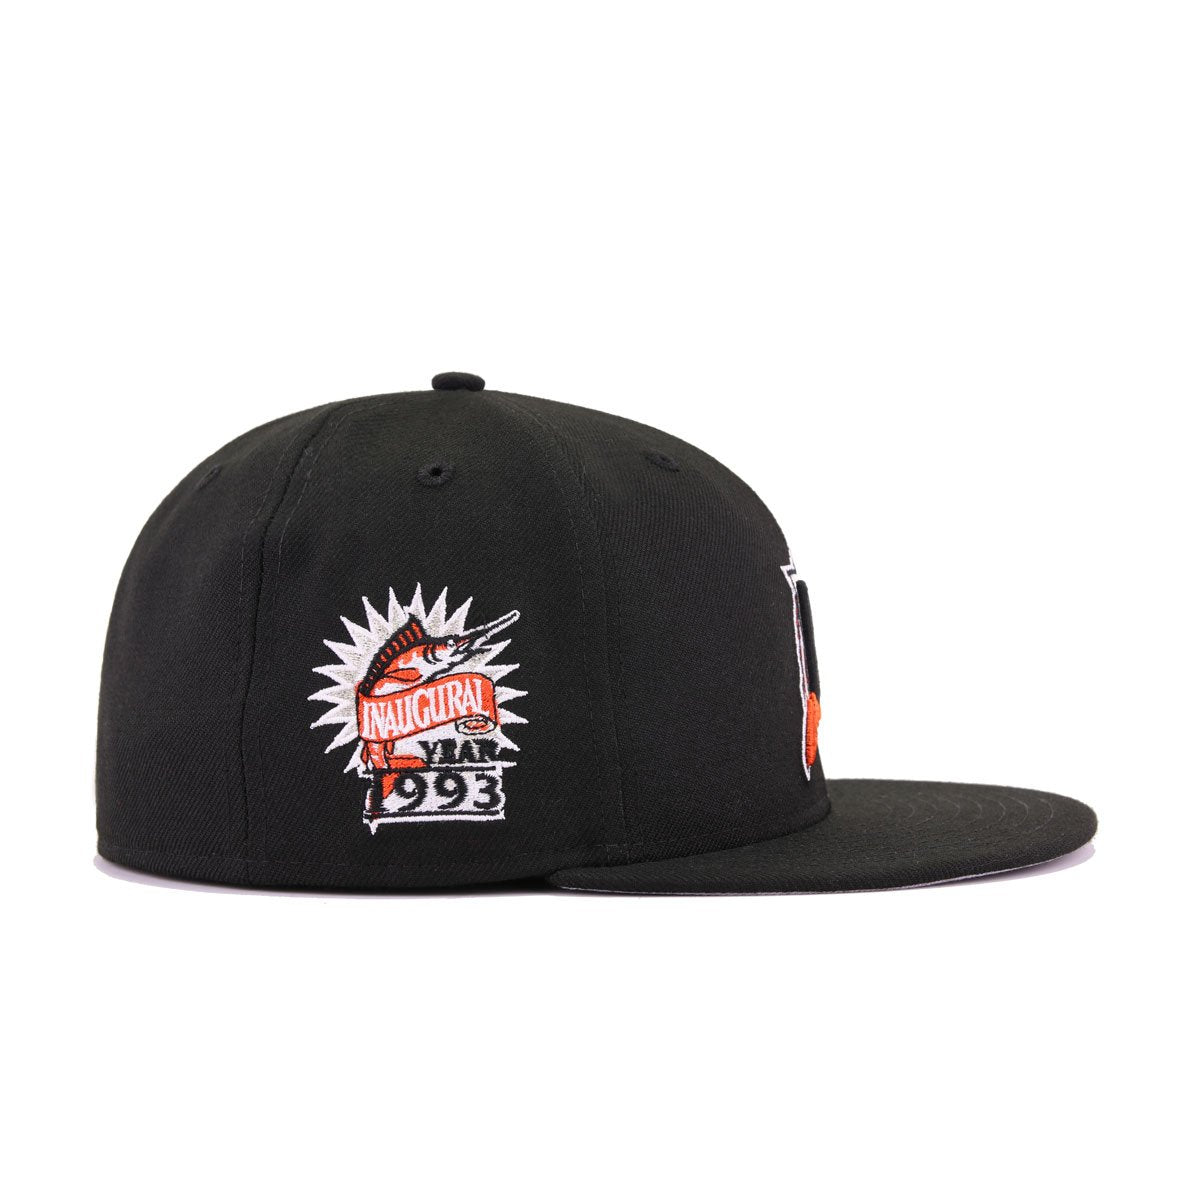 Florida Marlins Black Orangeade 1993 Inaugural Season New Era 59Fifty Fitted